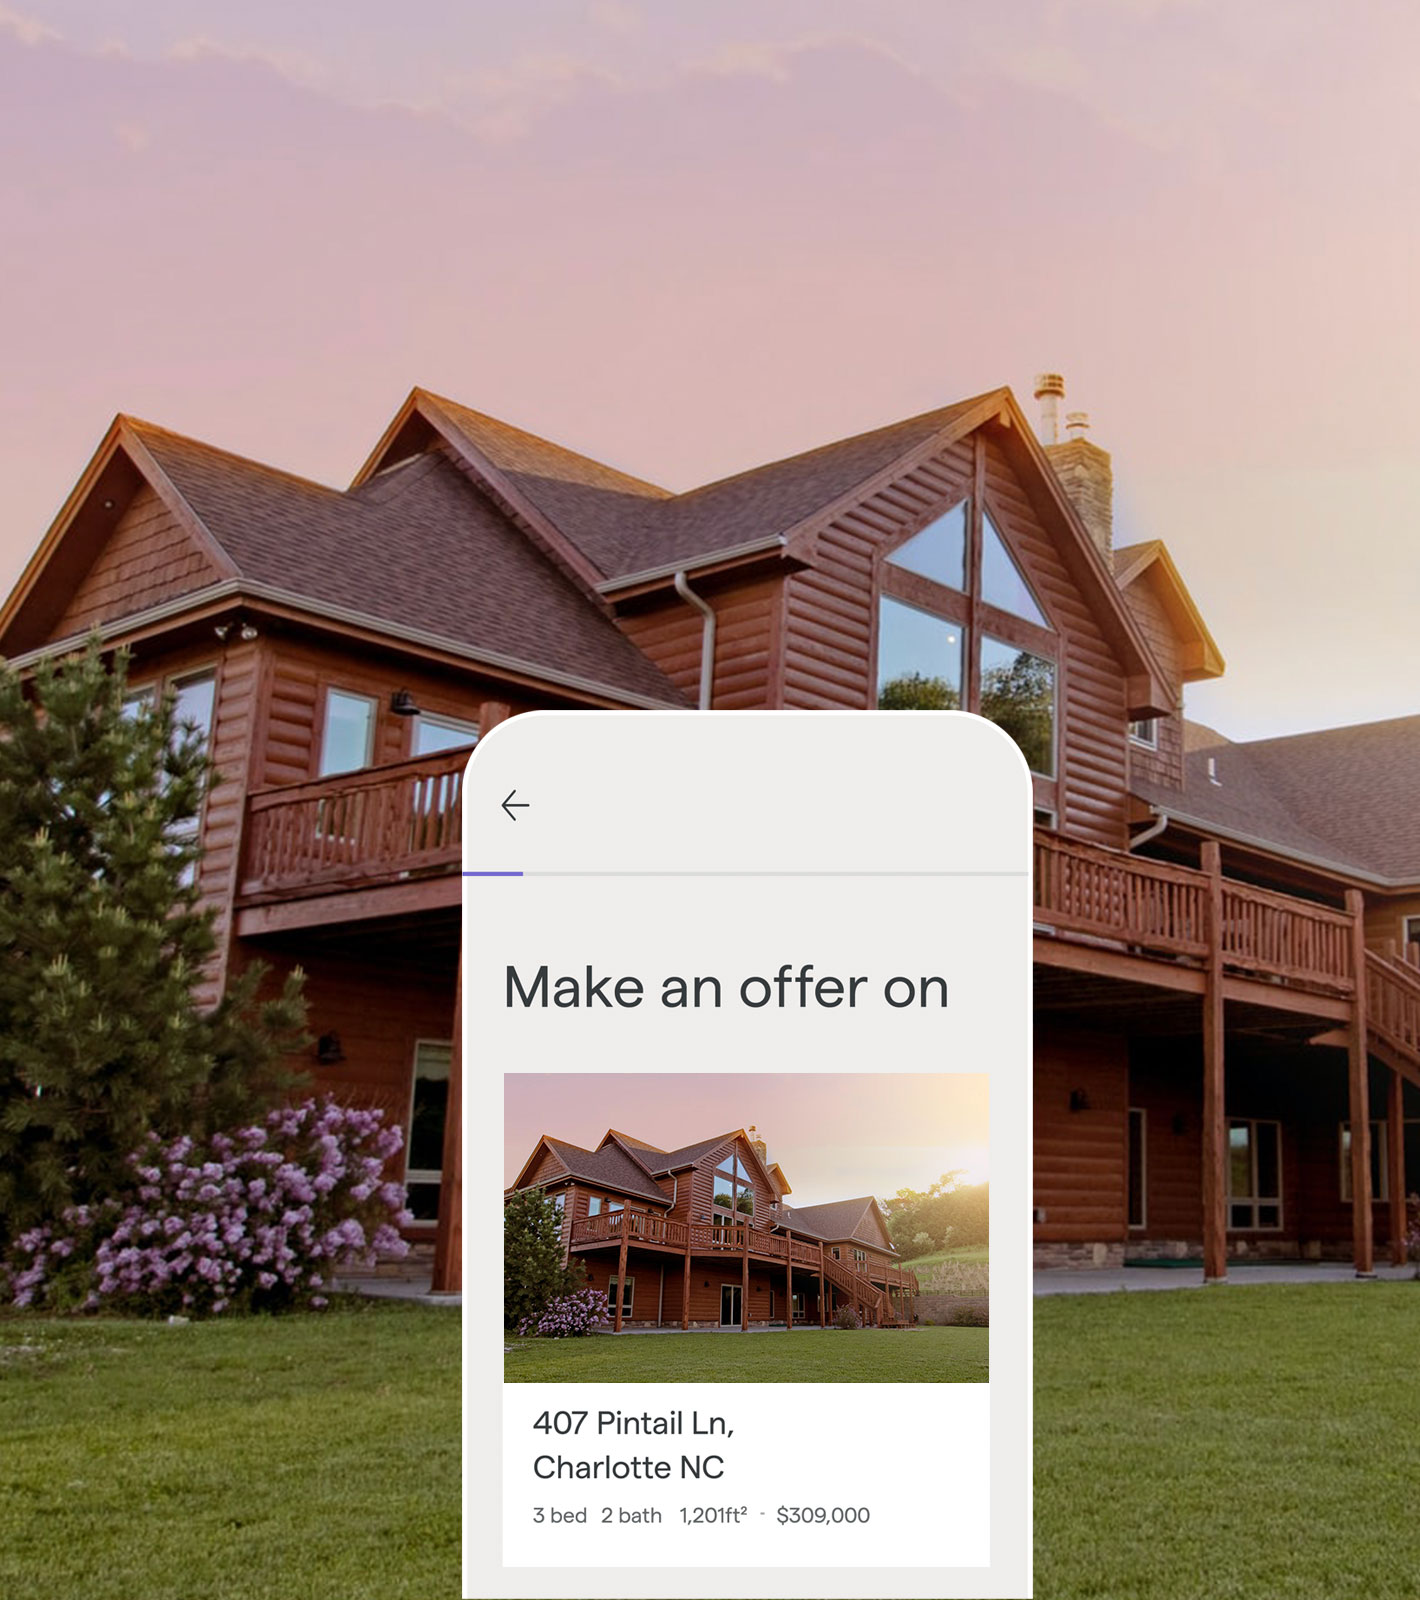 Ribbon real estate app showing how to make an offer on a Log cabin style home, with the home in the background